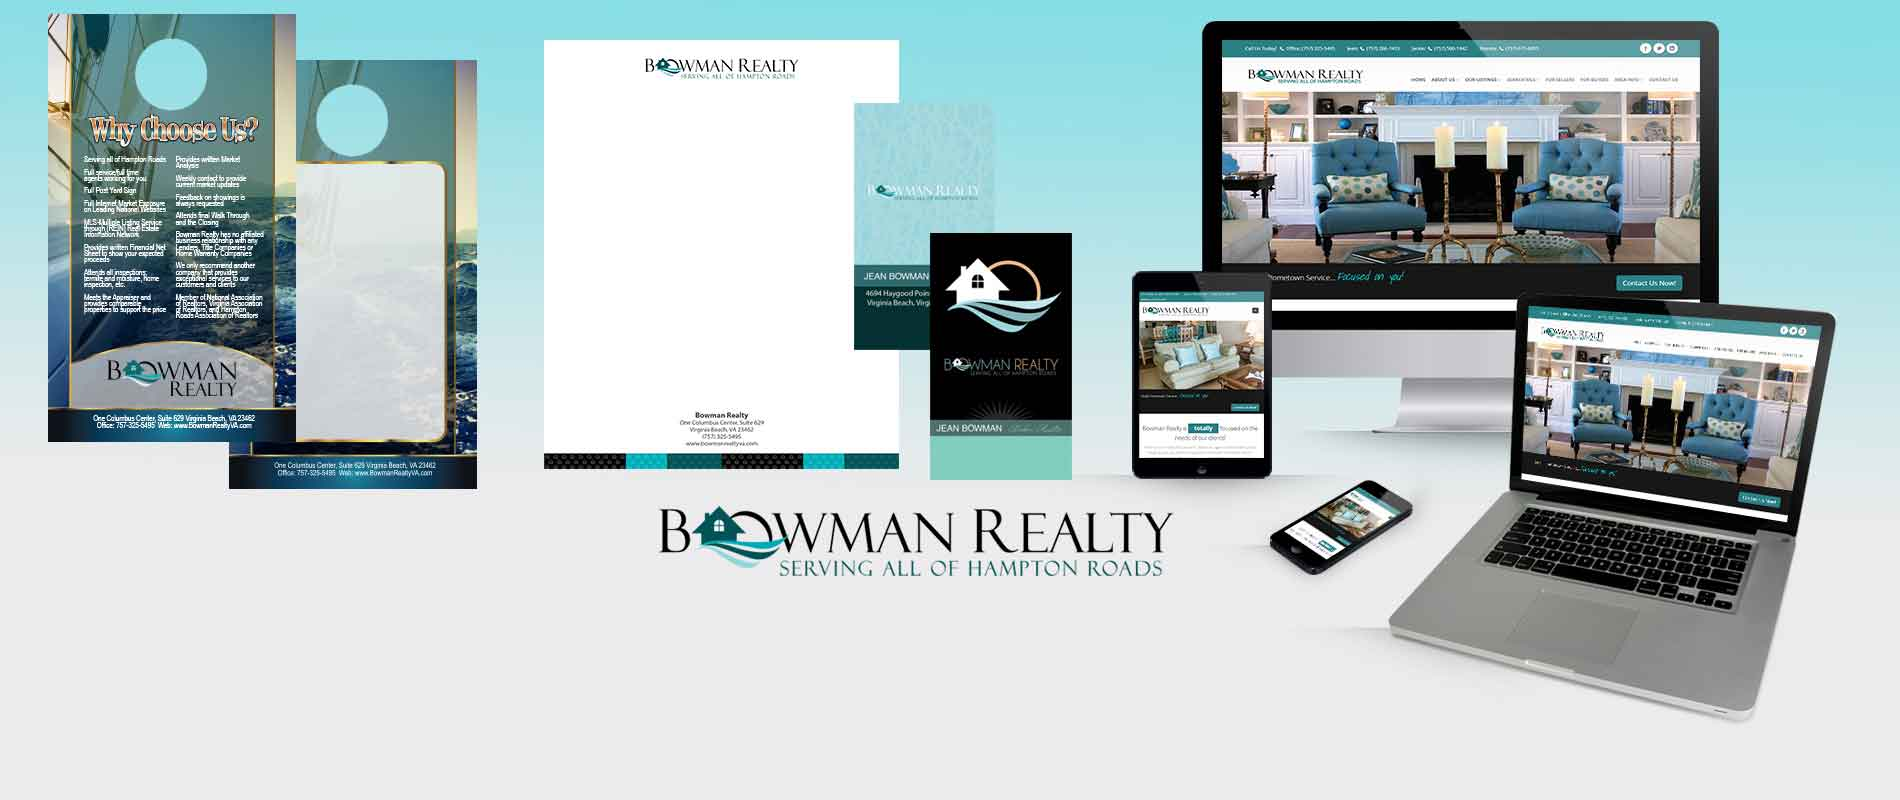 Bowman Realty Brand Development and Logo Design